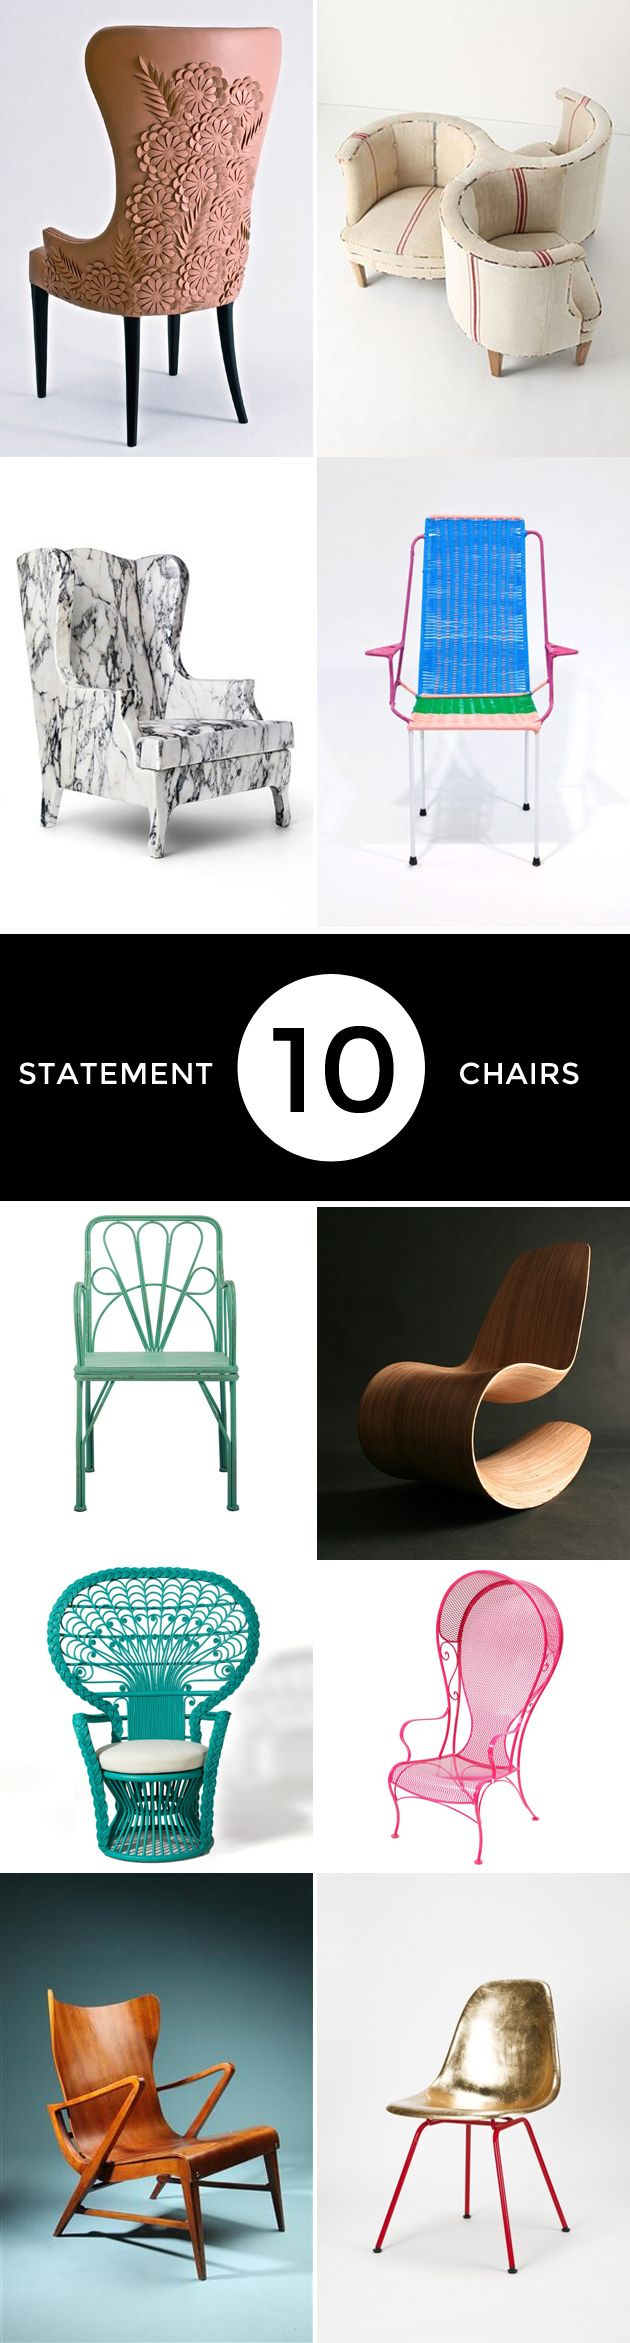 Every house needs a statement chair. Here are the top 10.